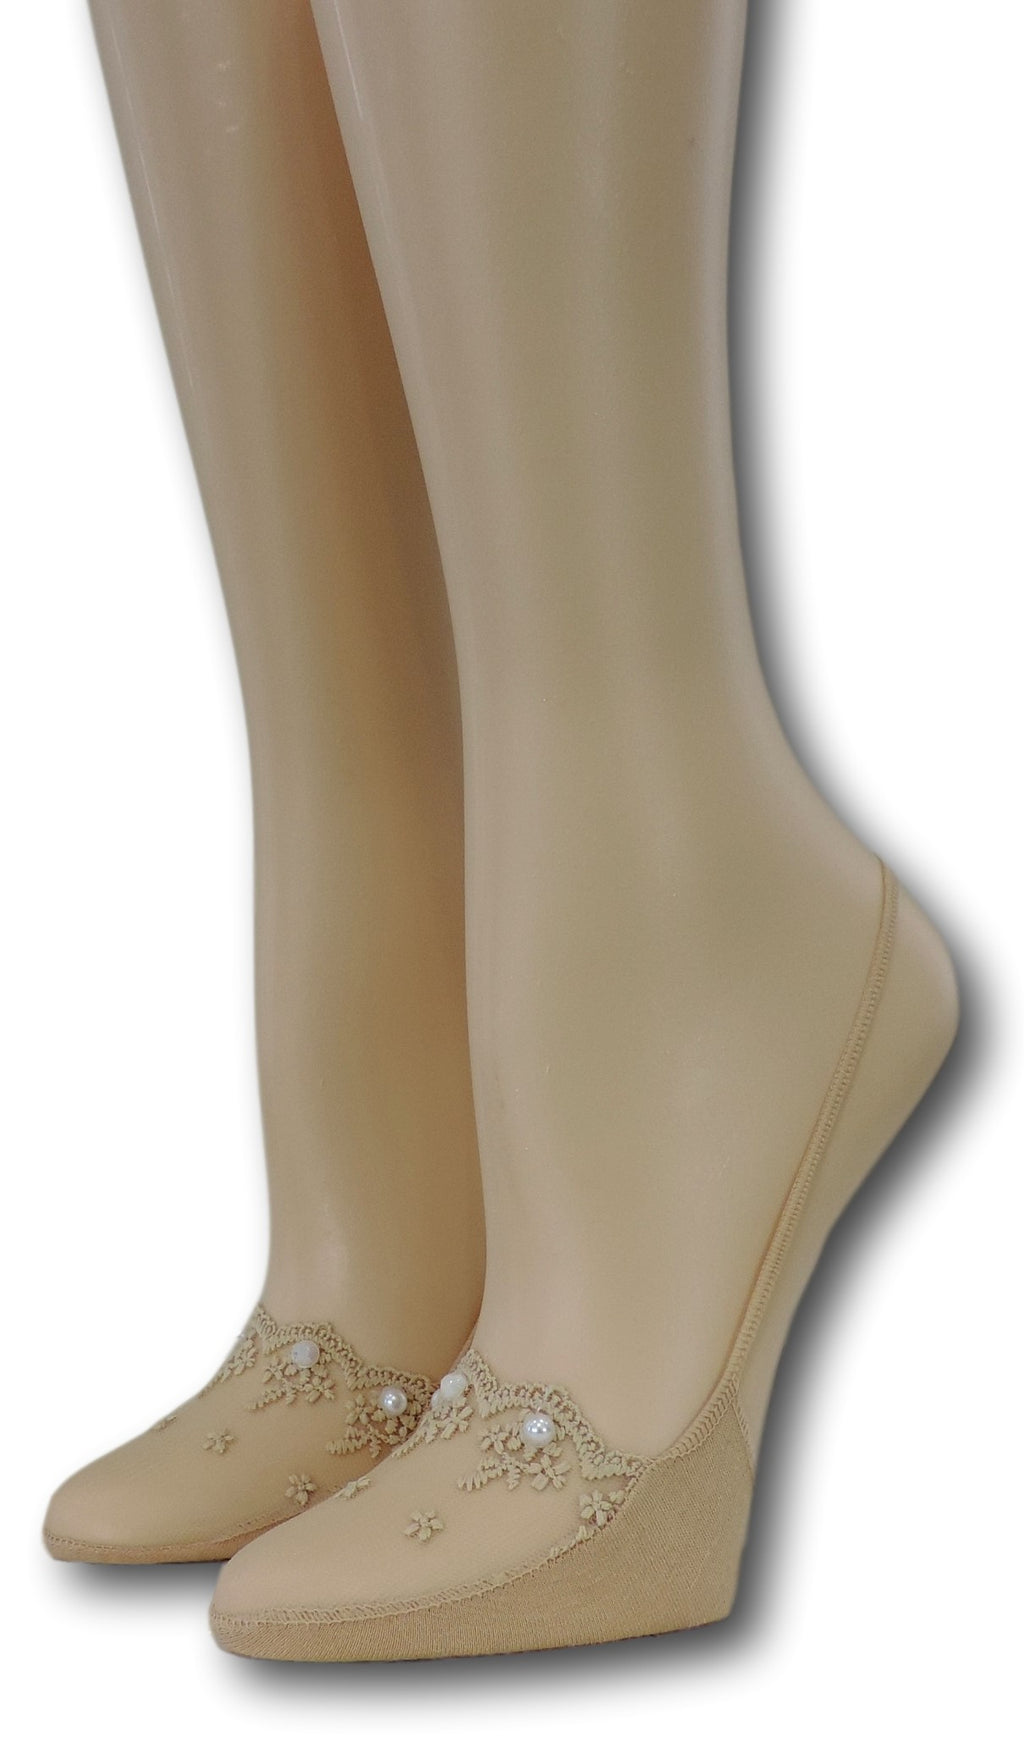 Fancy Slingback Beige Sheer Socks with beads